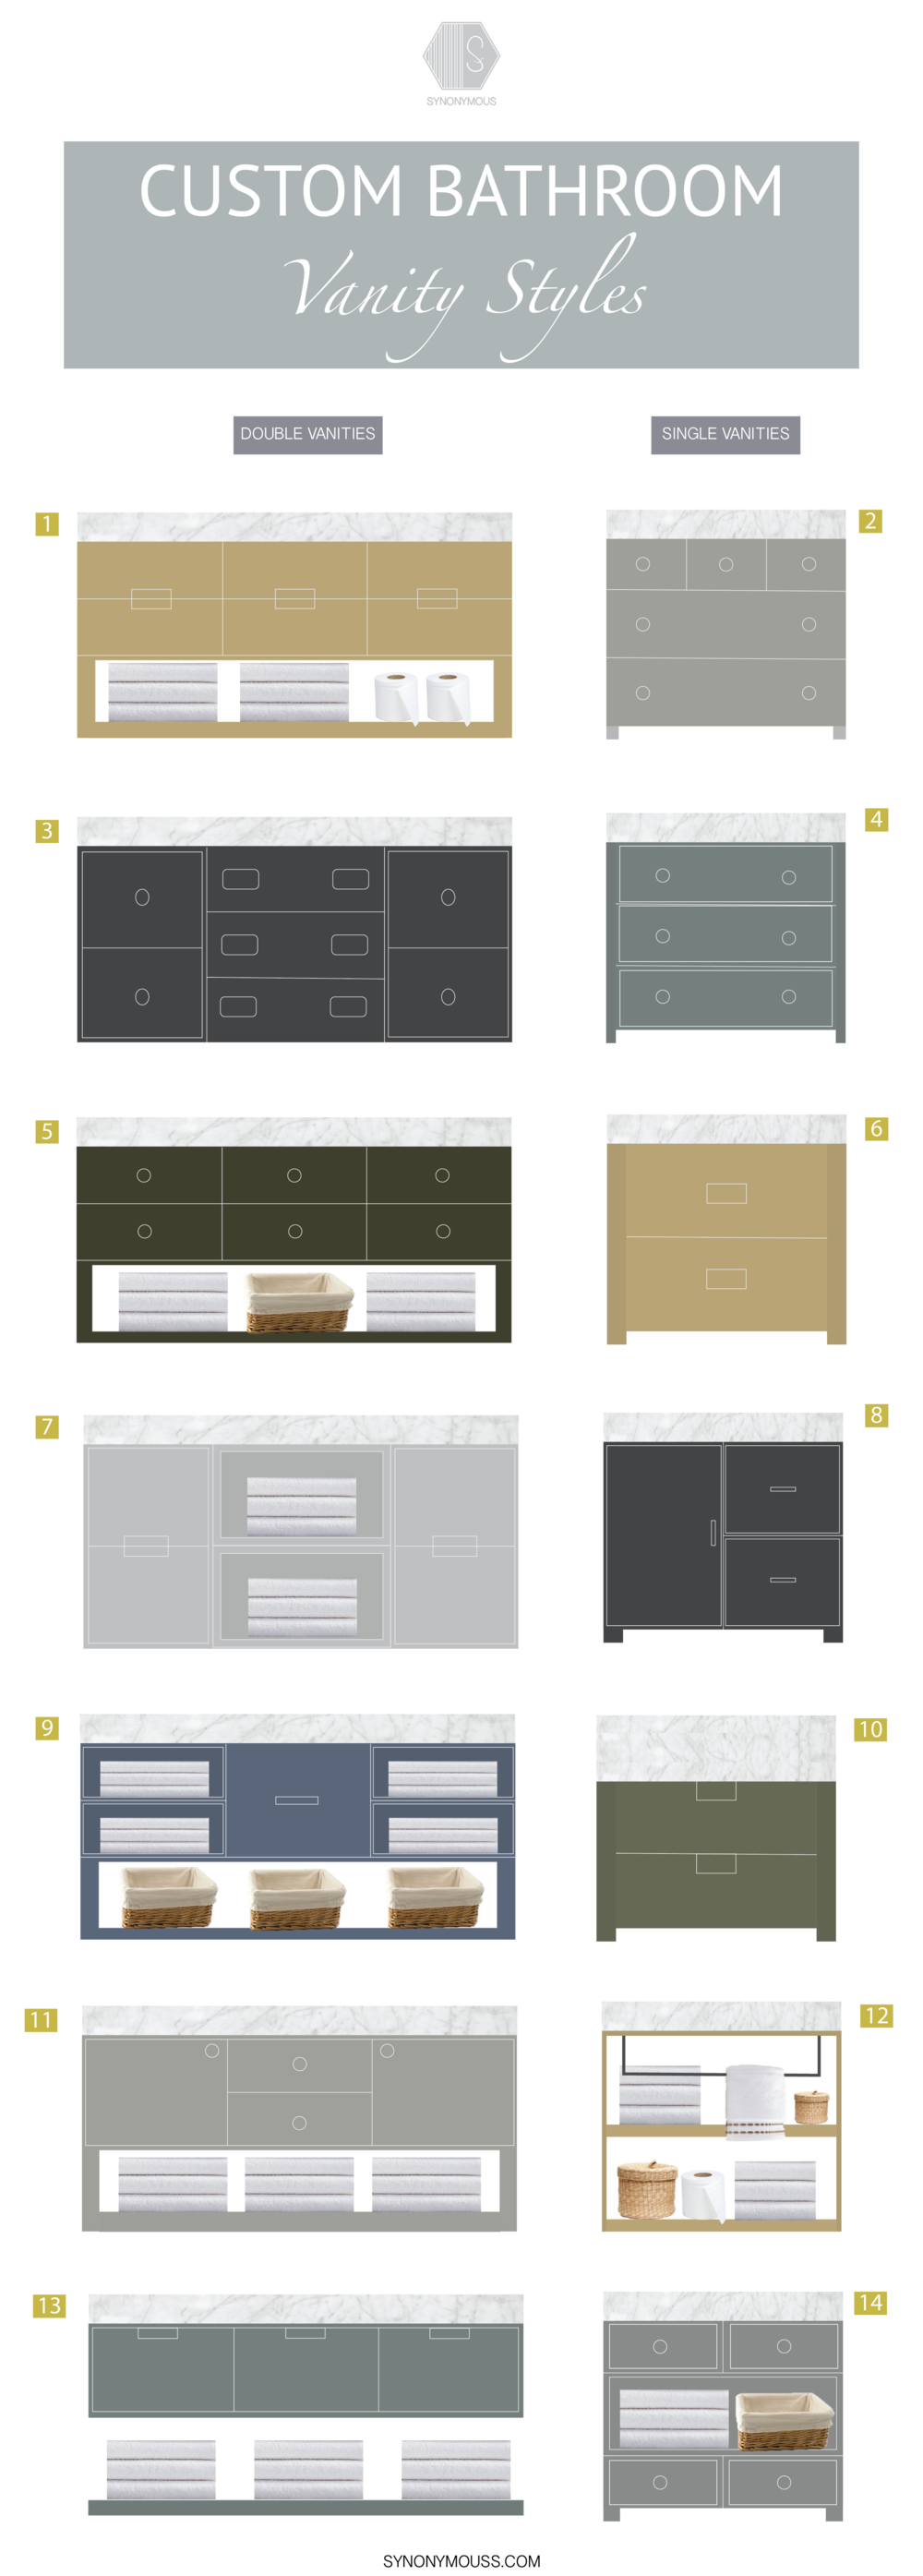 Guide To: Custom Bathroom Vanity Styles - Bathroom Vanities - Synonymouss.com - SYNONYMOUS